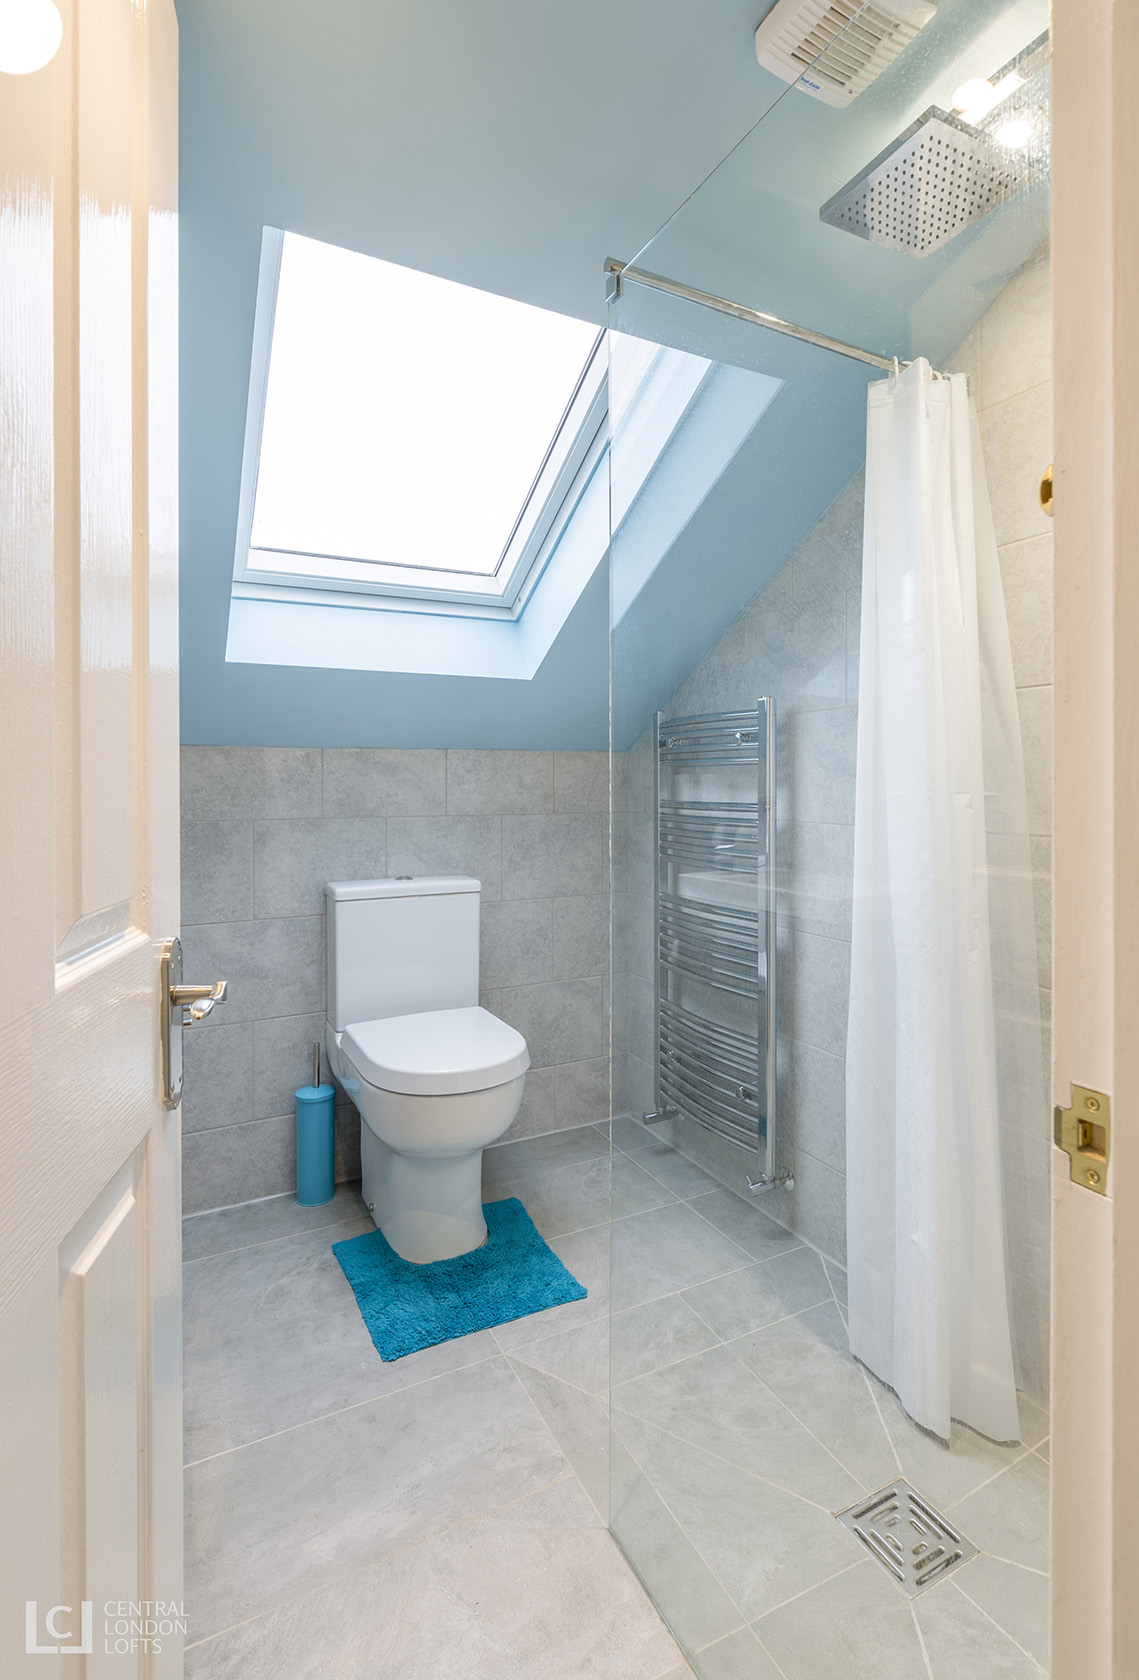 4 SOMERVILLE ROAD Loft Conversion 7